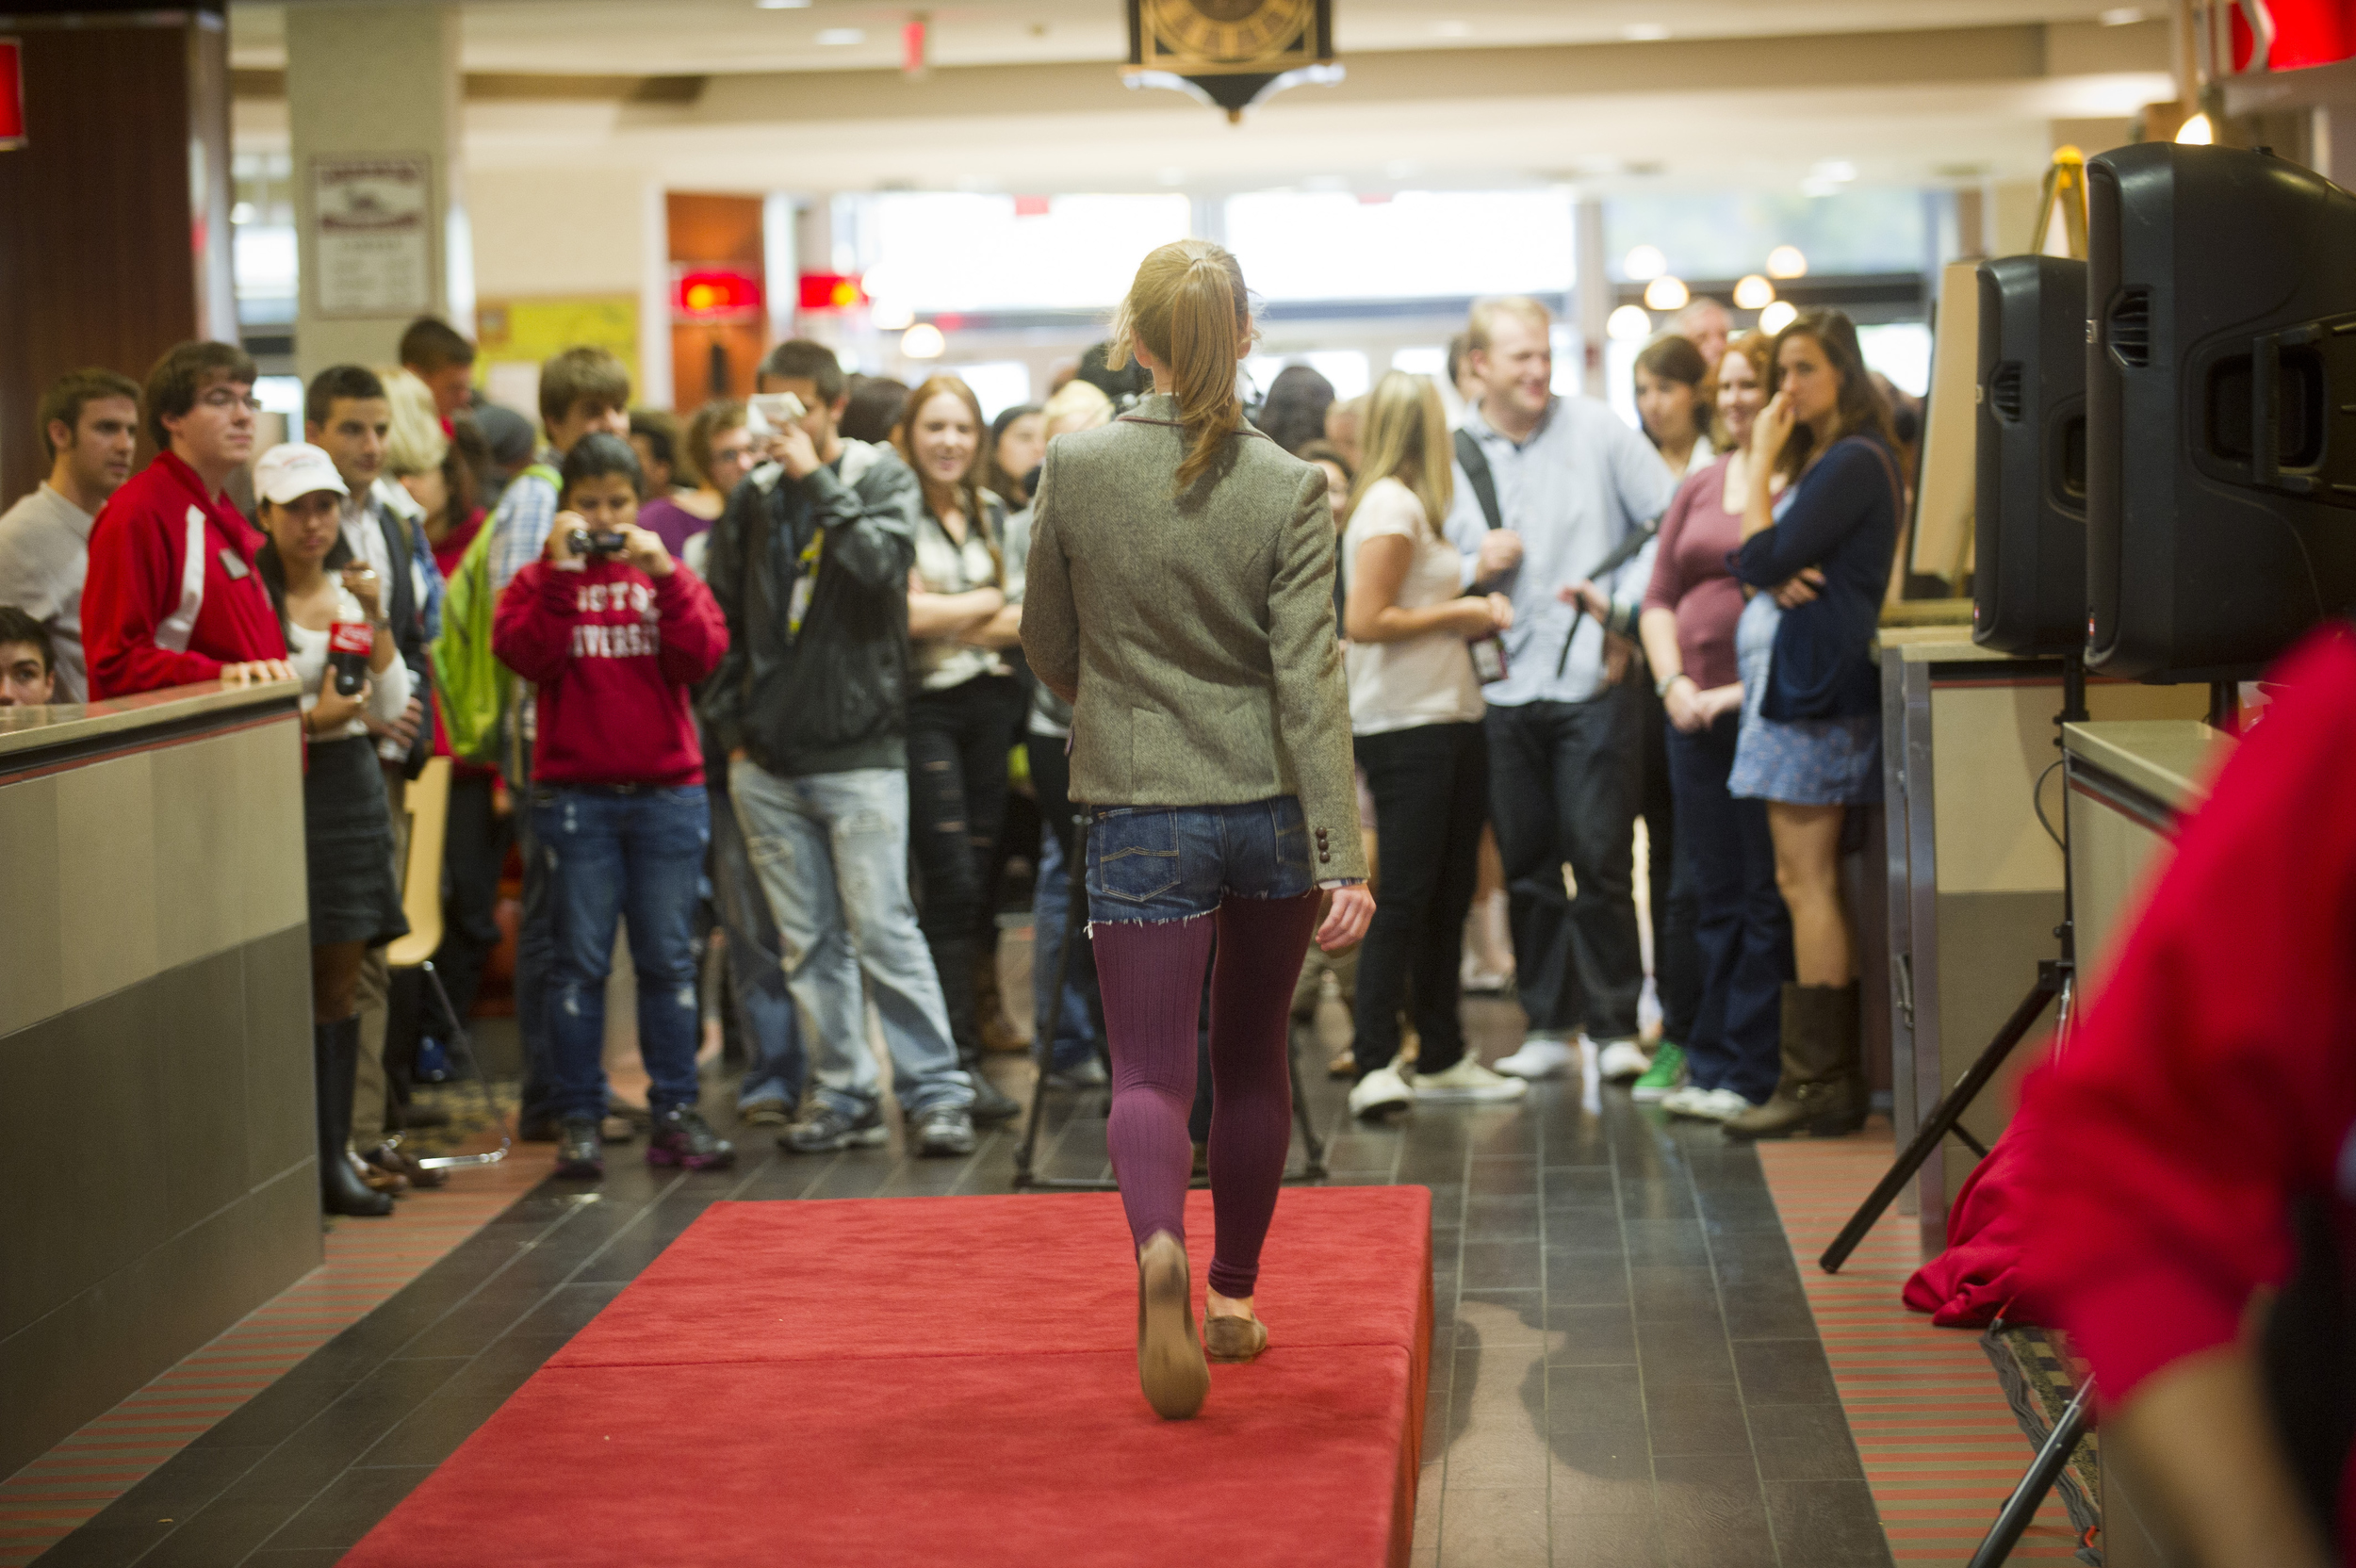 Taylor Stein (SMG14) hits the impromptu runway during the Fashion Show Flash mob at the GSU October 14, 2011.